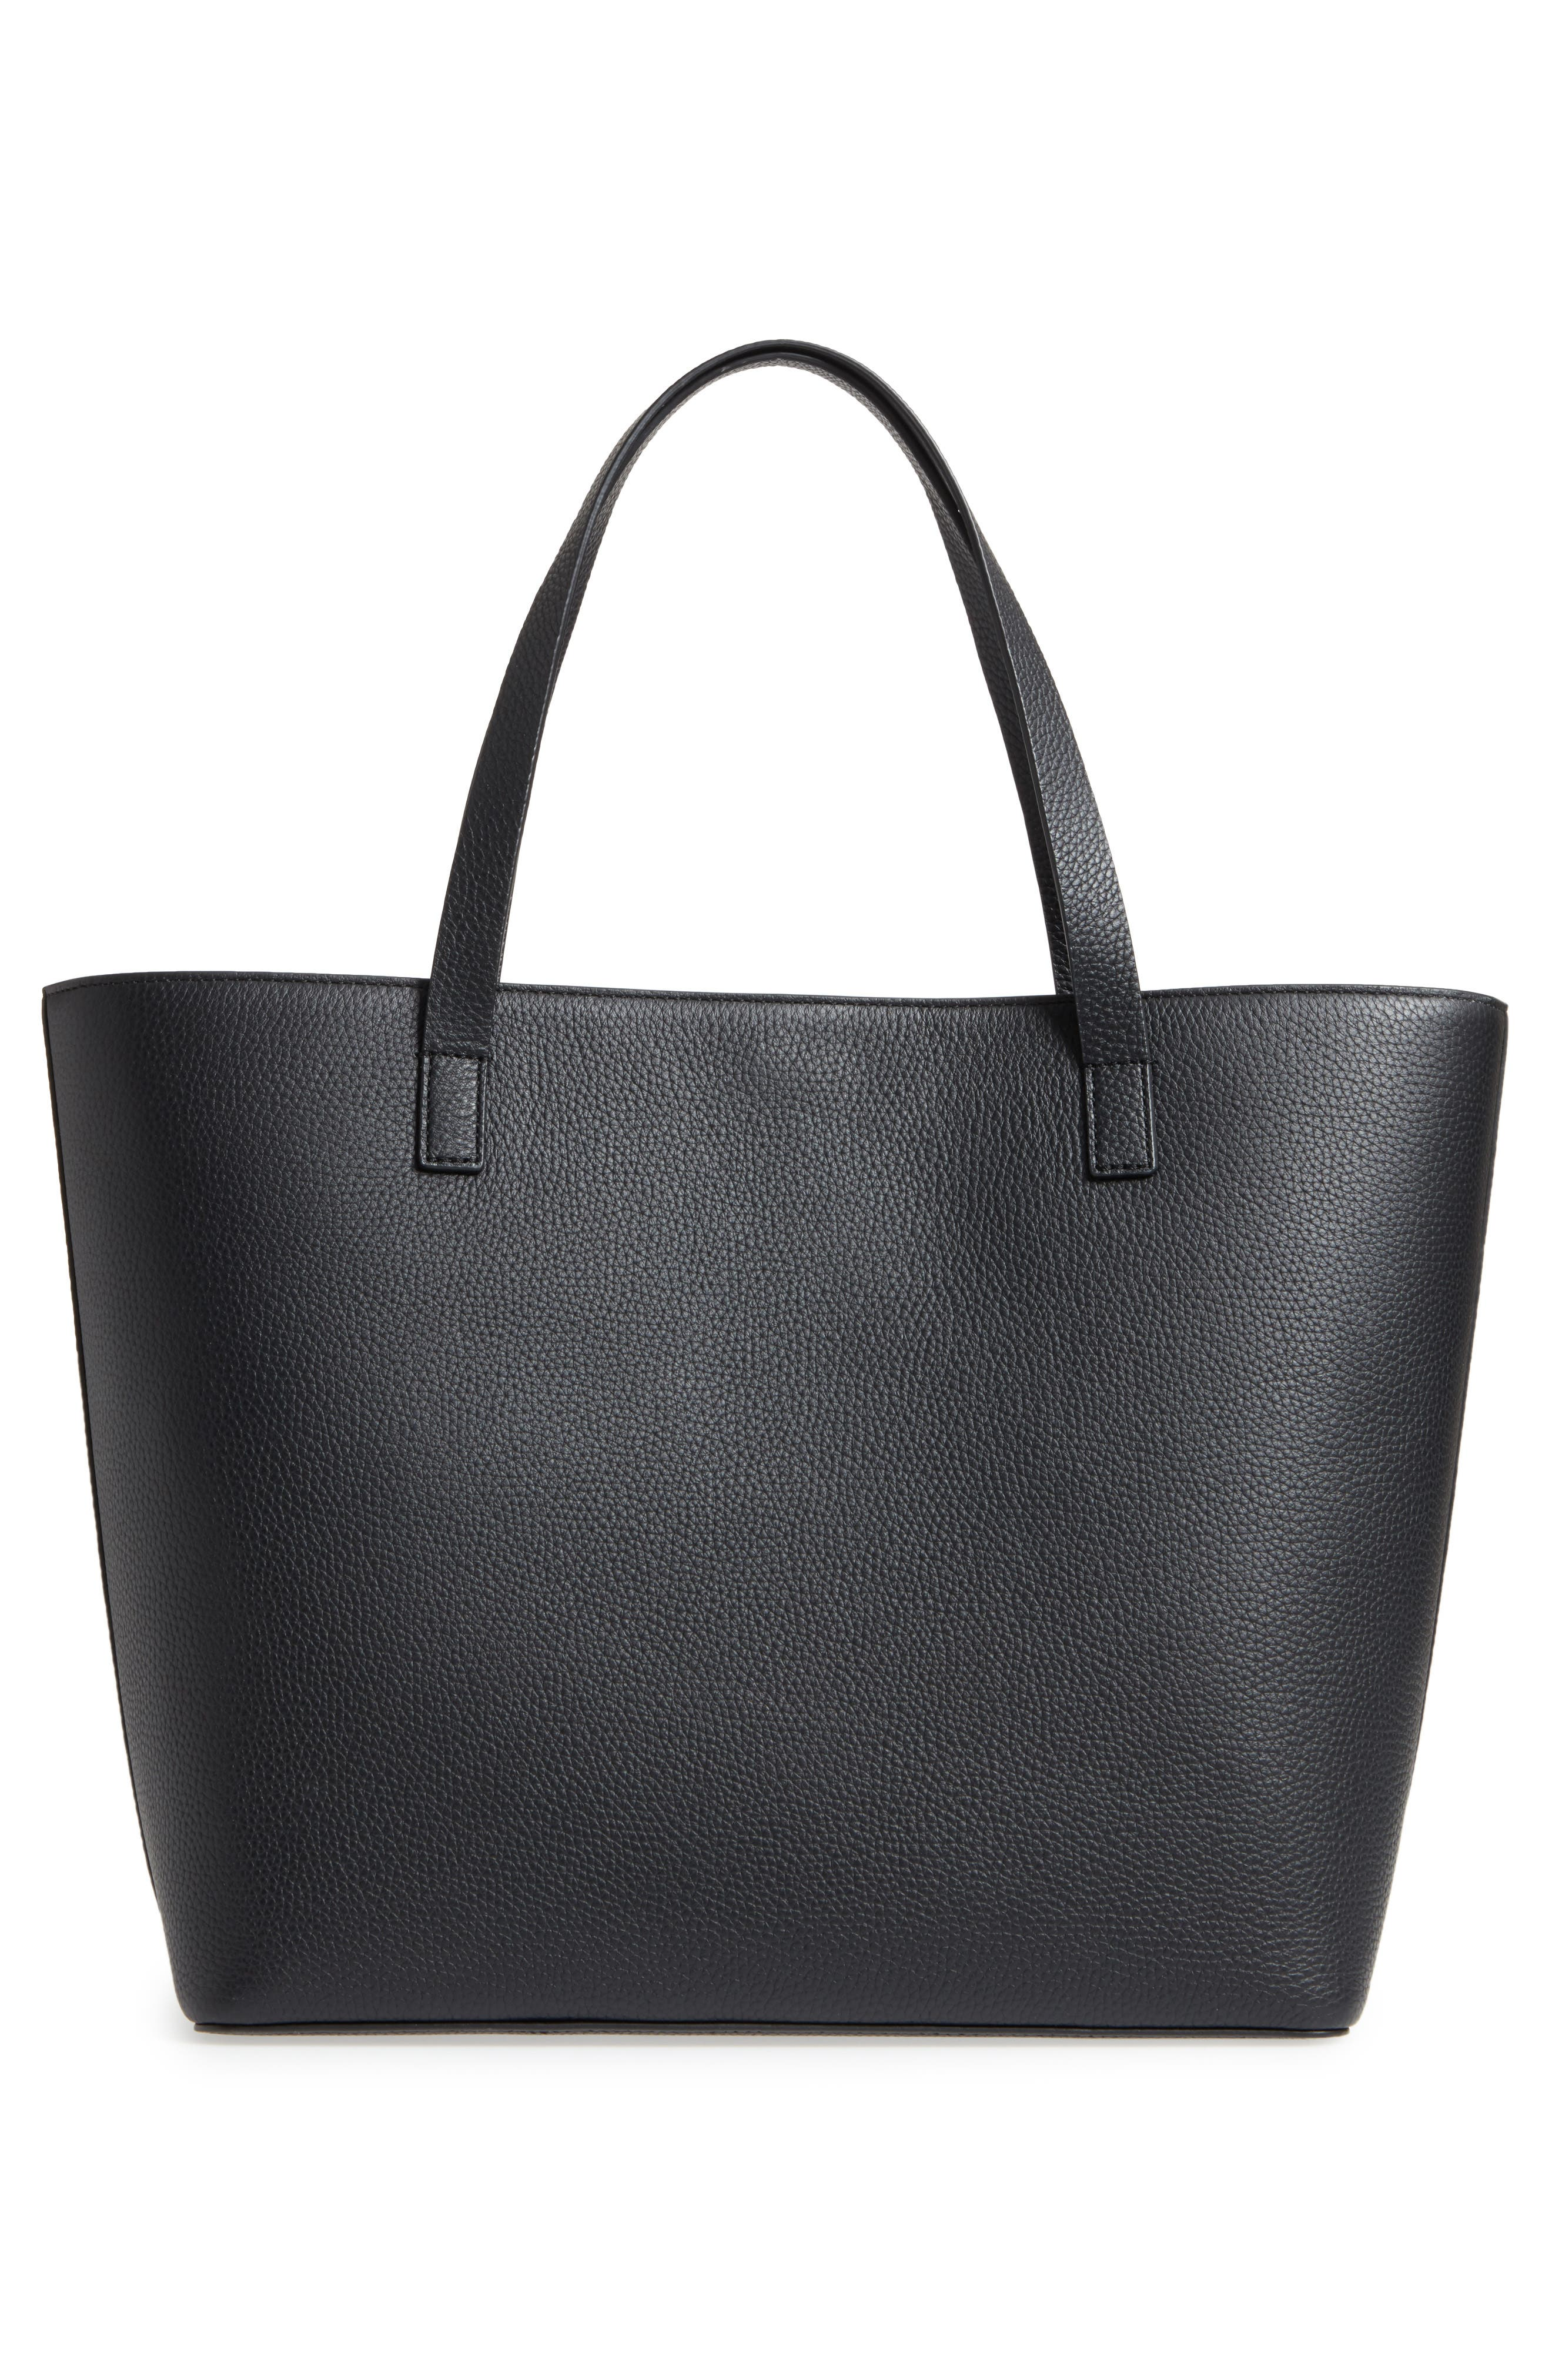 yours truly - ombré heart leather tote,                             Alternate thumbnail 3, color,